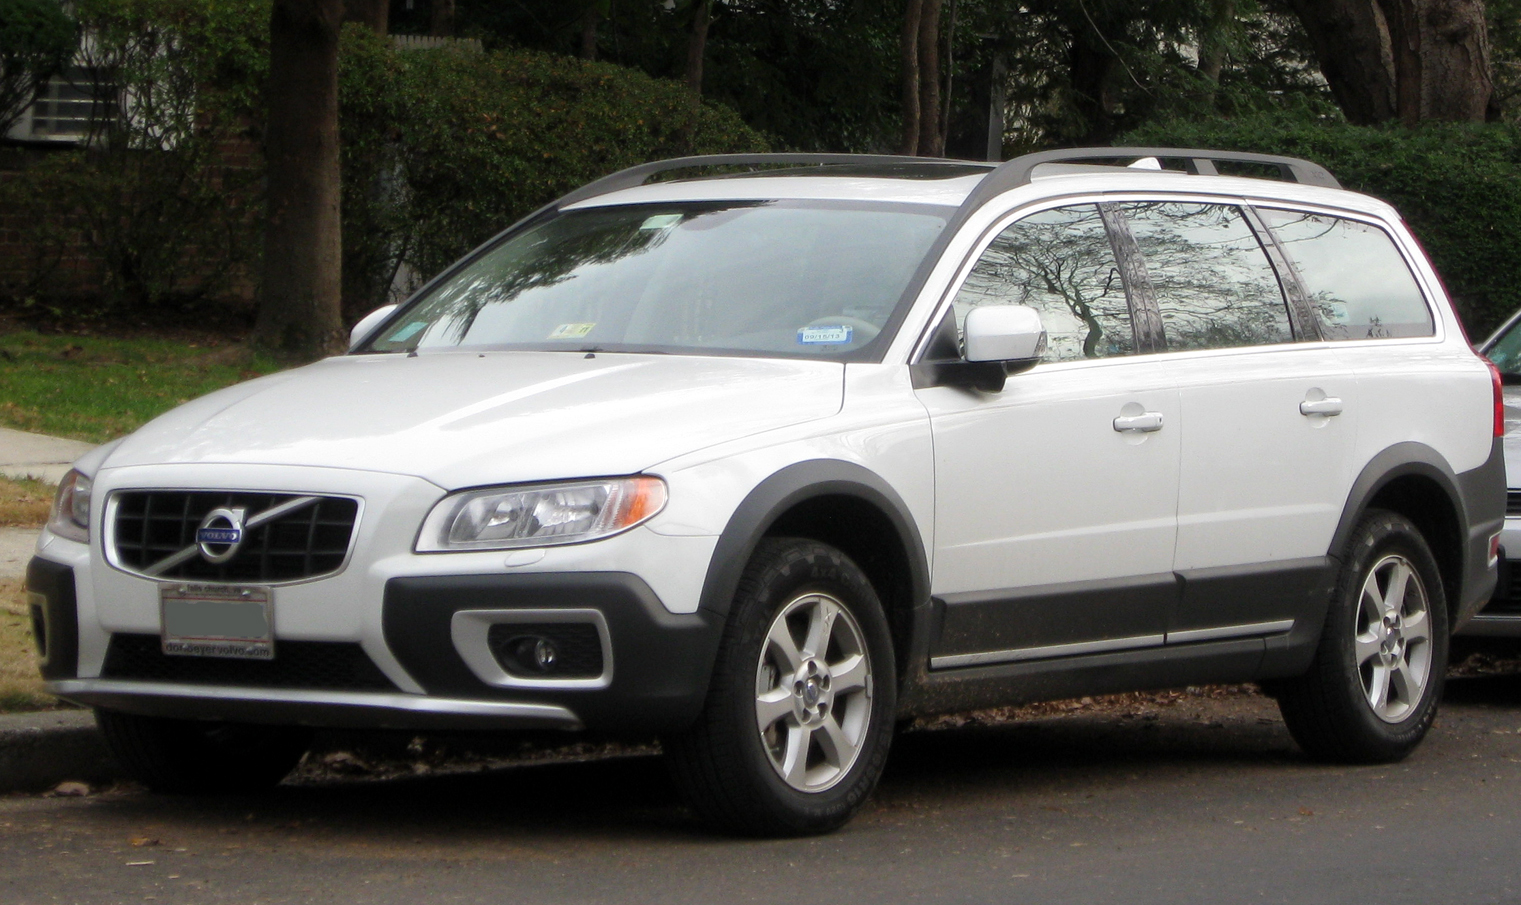 volvo xc70 on pinterest volvo brown colors and internet. Black Bedroom Furniture Sets. Home Design Ideas